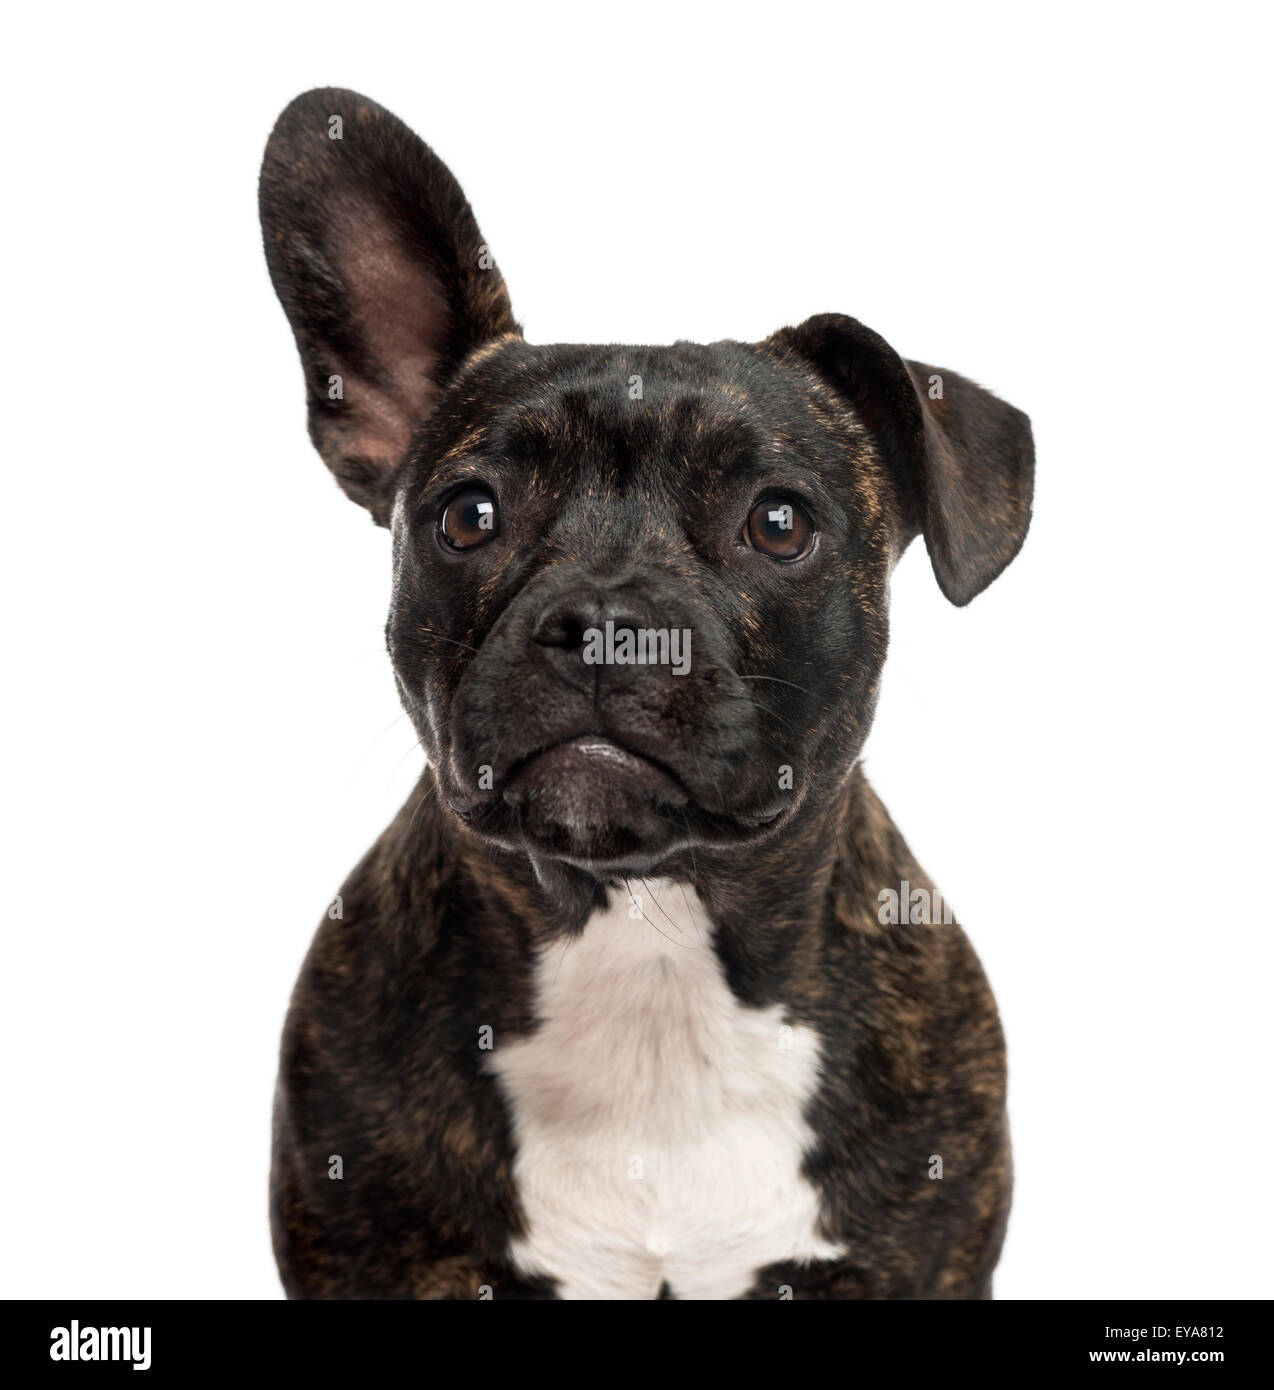 Close-up of a Staffordshire Bull Terrier in front of a white background - Stock Image